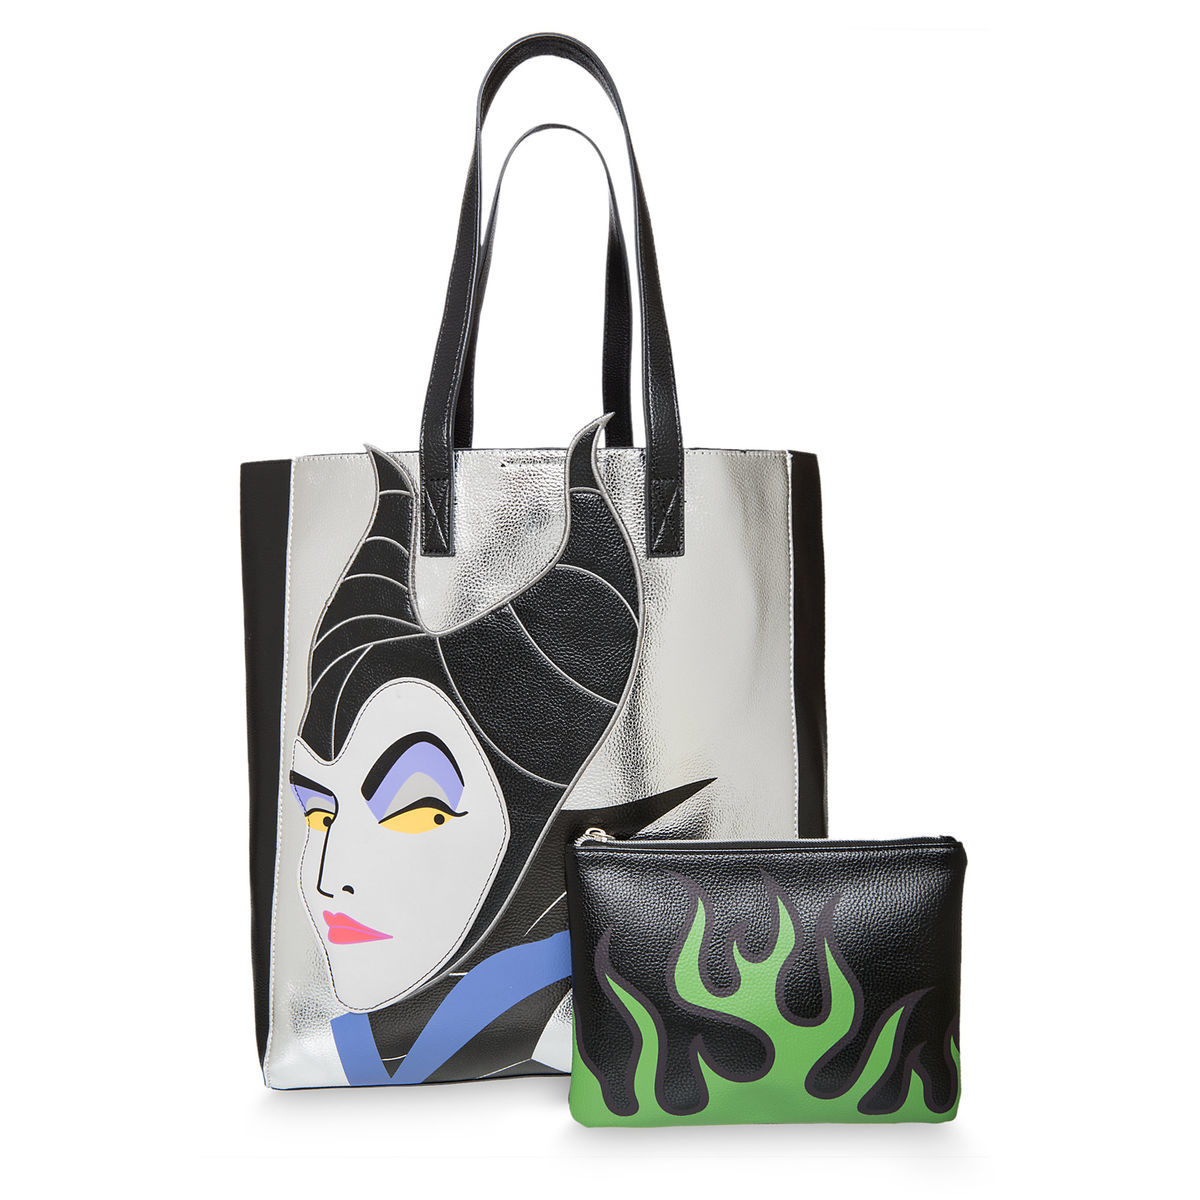 d774d1ac16b Product Image of Maleficent Tote Bag by Danielle Nicole   1